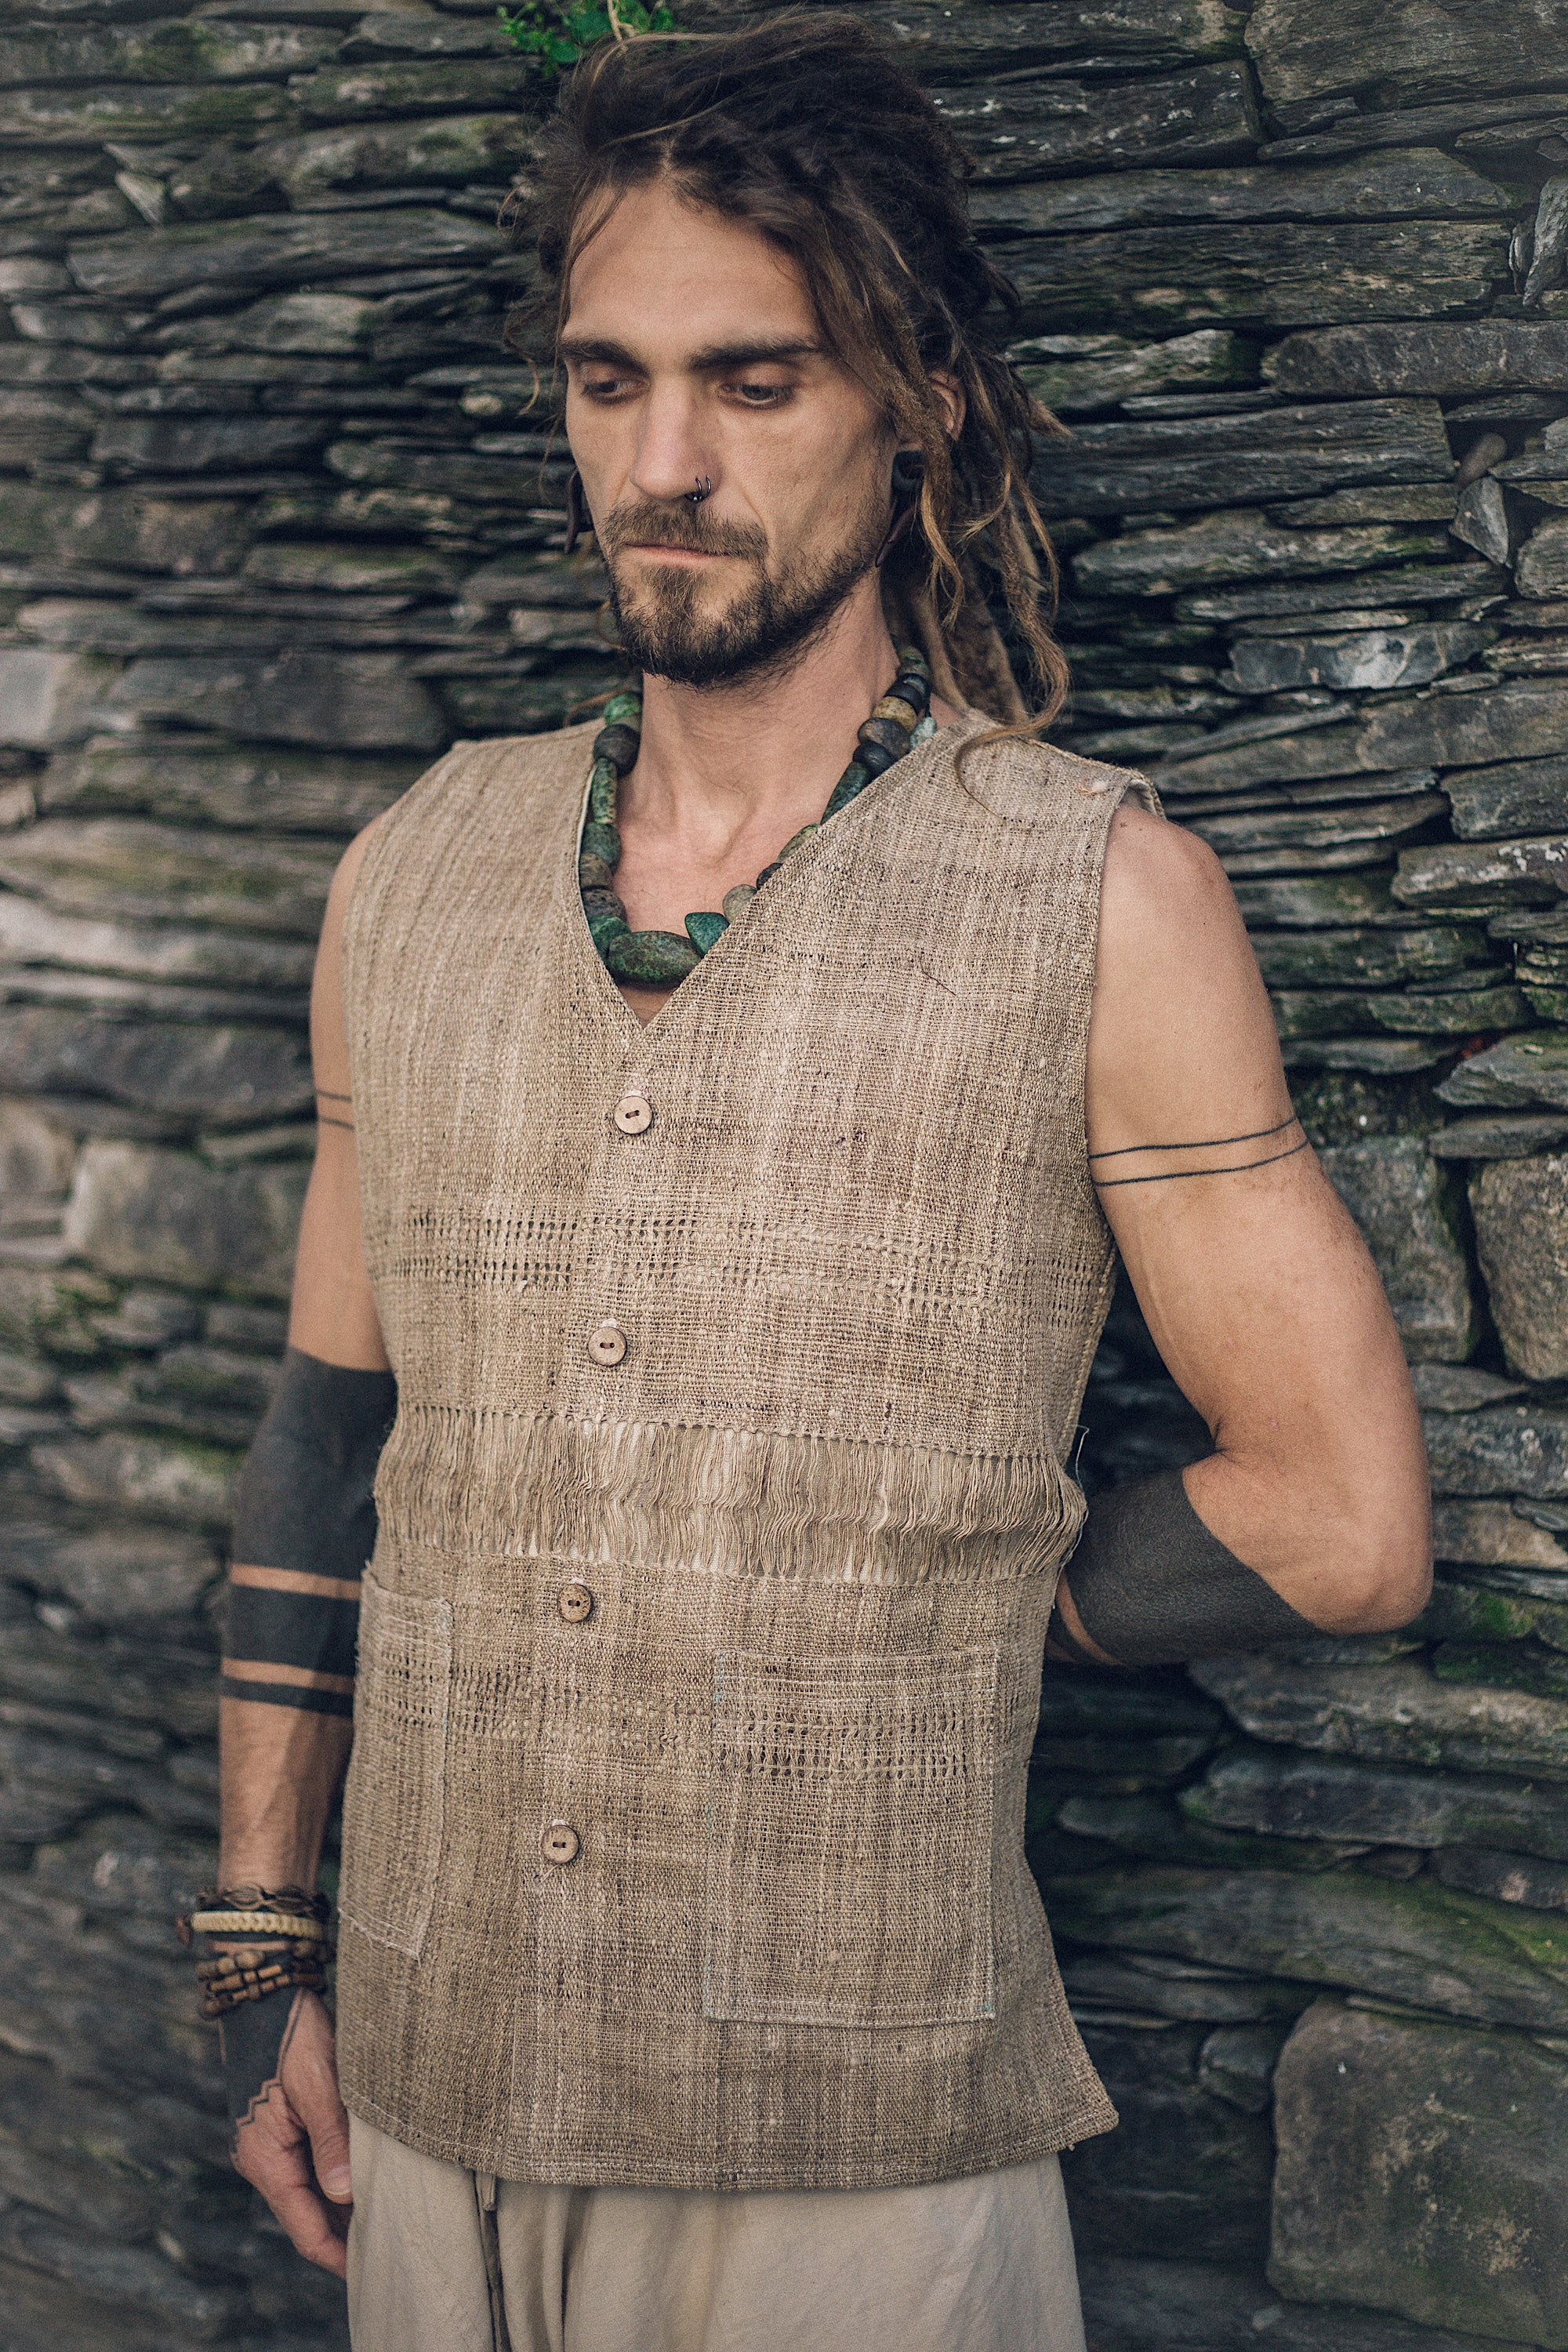 Hippie vest, gypsy men vest, festival vest for men, sleeveless vest, organic hooded vest, hippie vest with hoodie, hippie nomad vest, festival vest, gypsy vest, burning man cloth, natural hooded waistcoat, natural vest, vegan vest, eco men vest, handmade men vest,  men embroidered vest.  Tribal man vest, earthy vest, rusty vest, wool vest for men, hippie hemp vest, linen vest for men. Brown men vest,